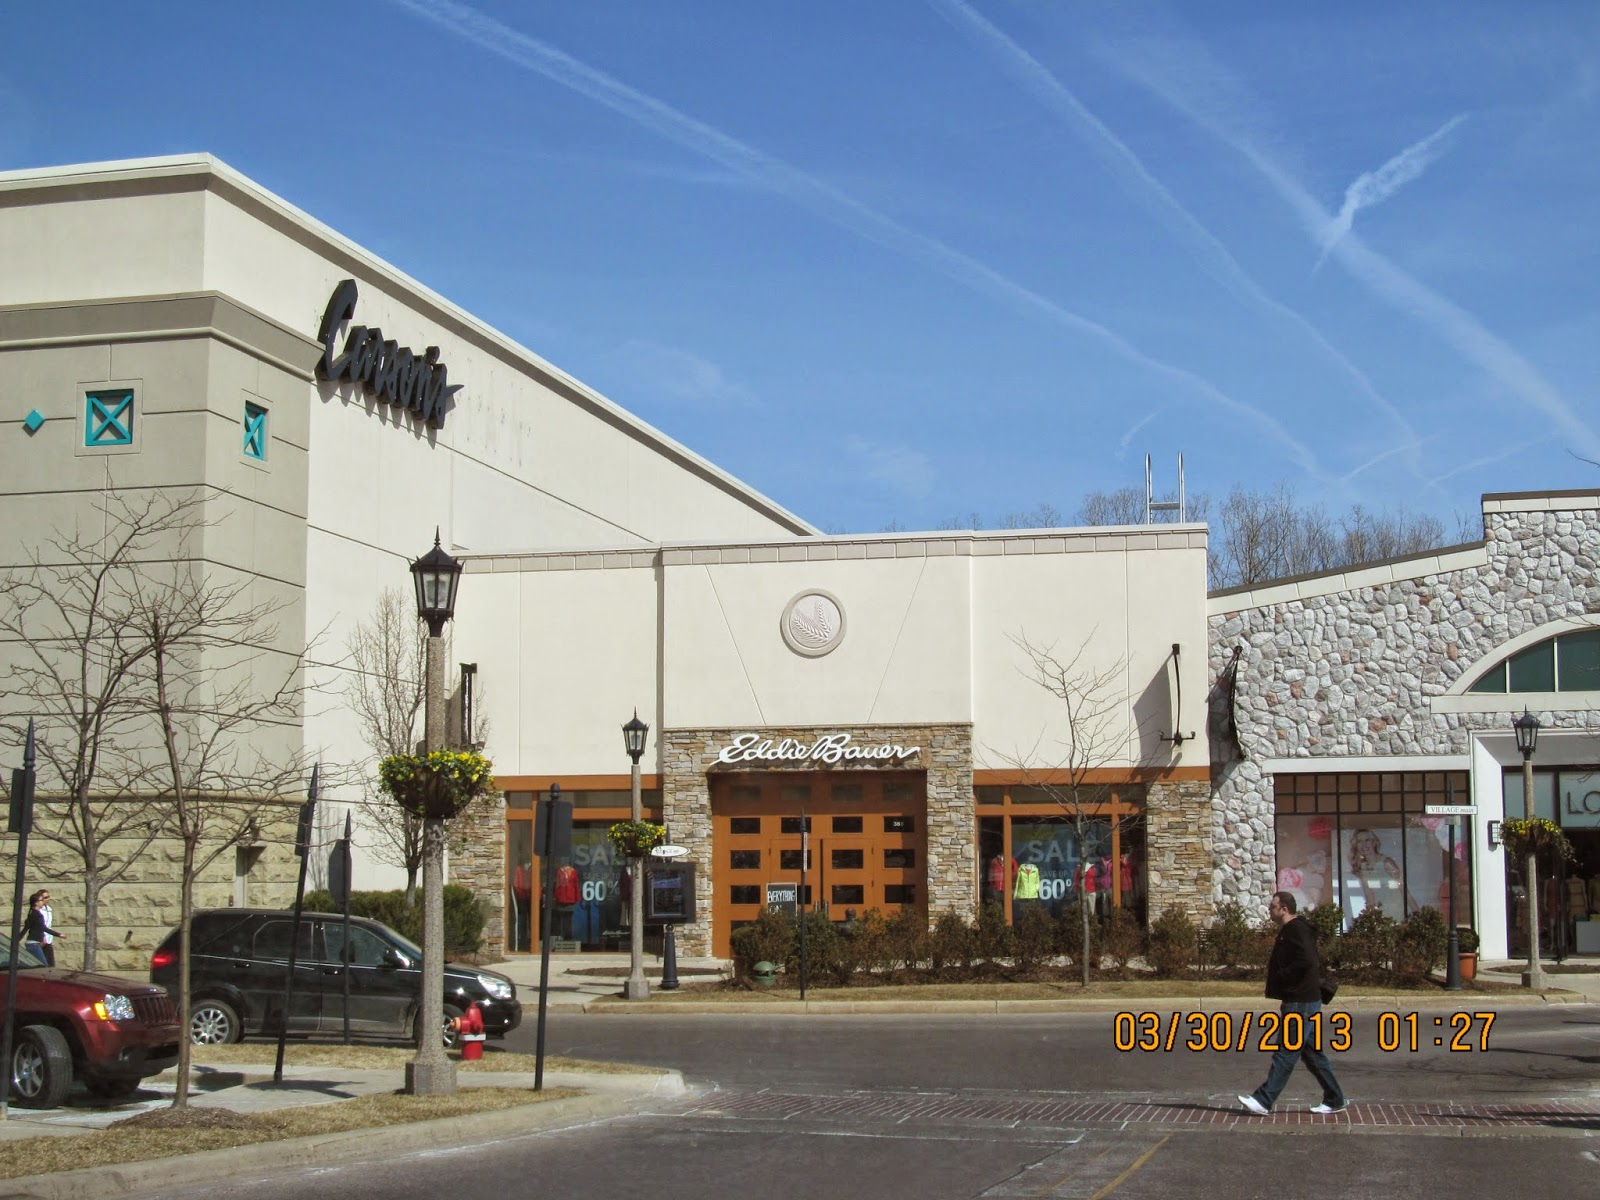 The Mall at Partridge Creek is home to nearly 90 distinctive stores and restaurants. In addition, The Mall at Partridge Creek has amenities unique to malls in Michigan, including: free Wi-Fi, pop jet fountains, a TV Court, and a foot fireplace.